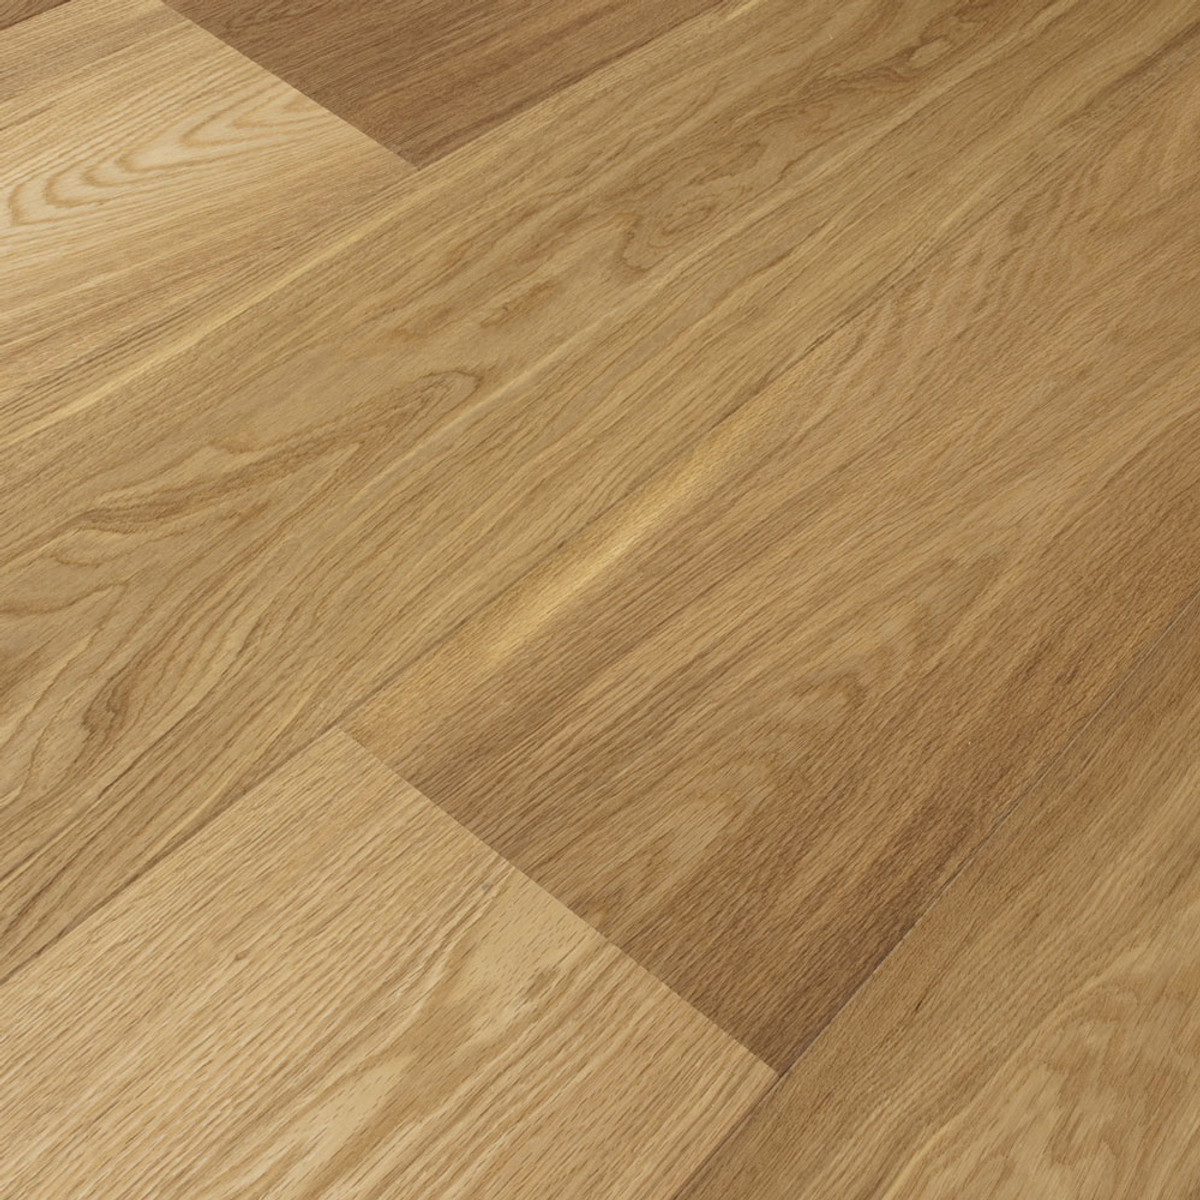 Tuscany Vermont_Oak_Brushed_&_Oiled Engineered Wood Flooring  www.tuscanytiles.co.uk